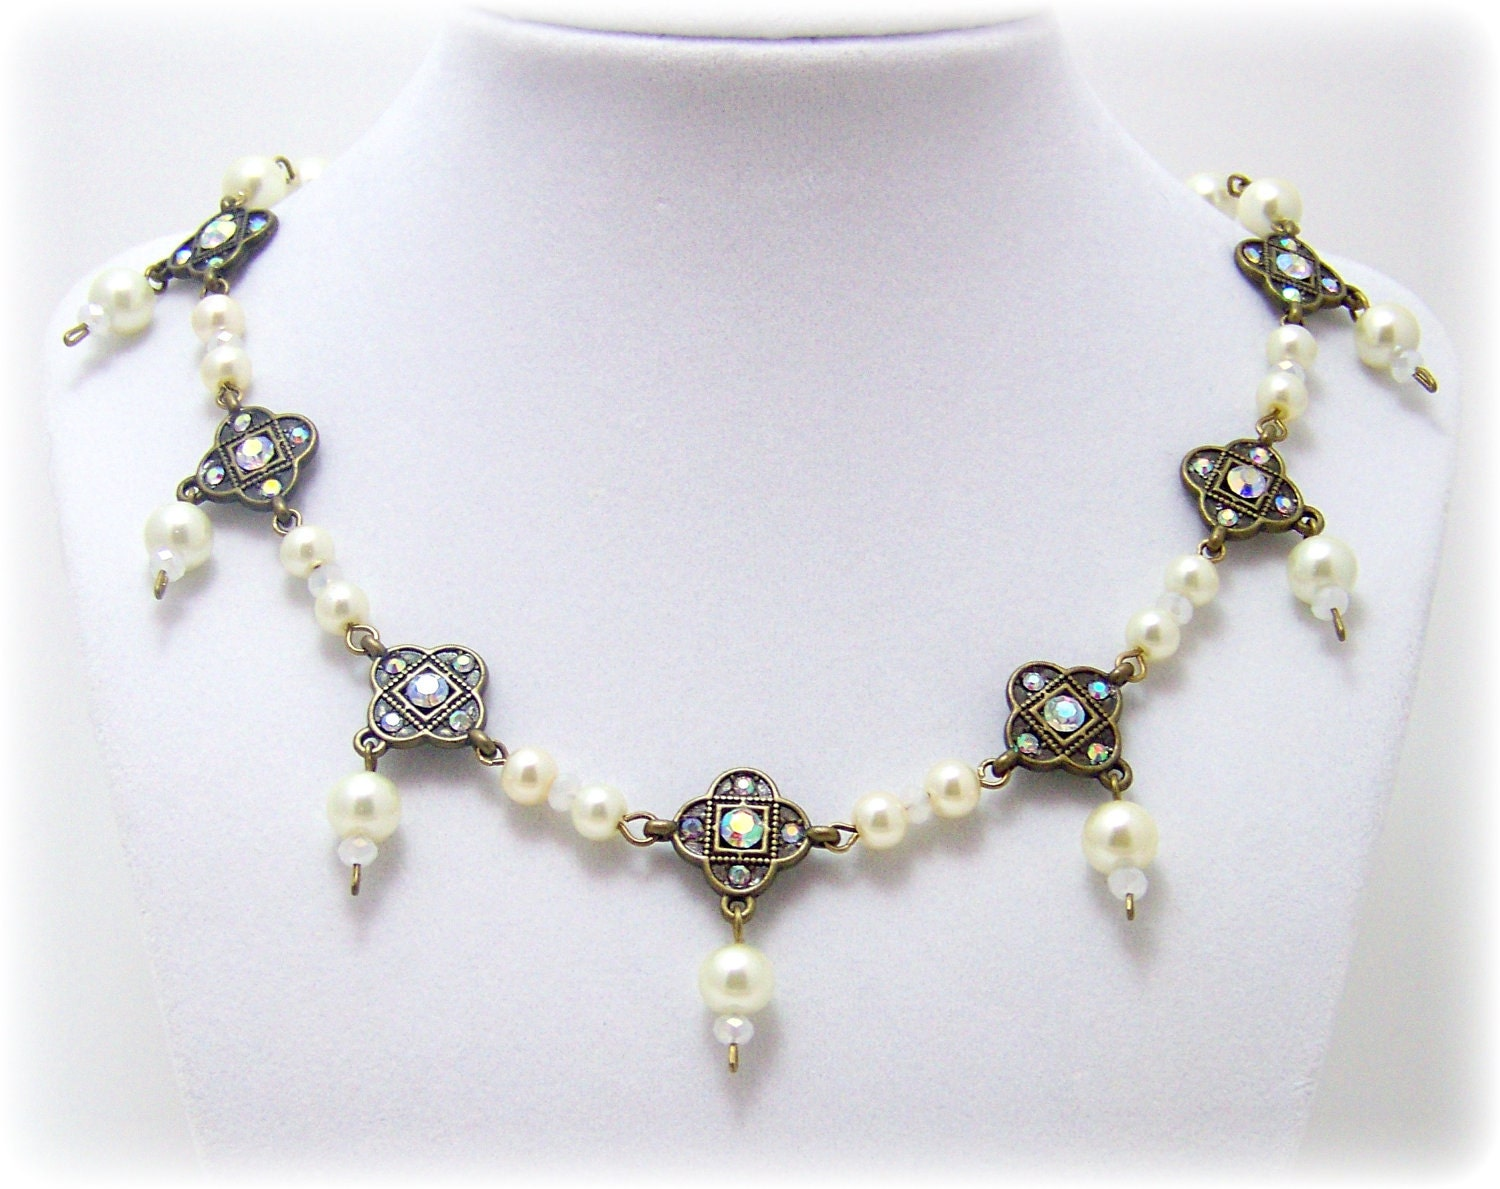 Medieval necklace medieval jewelry by treasuresforaqueen for Mary queen of scots replica jewelry